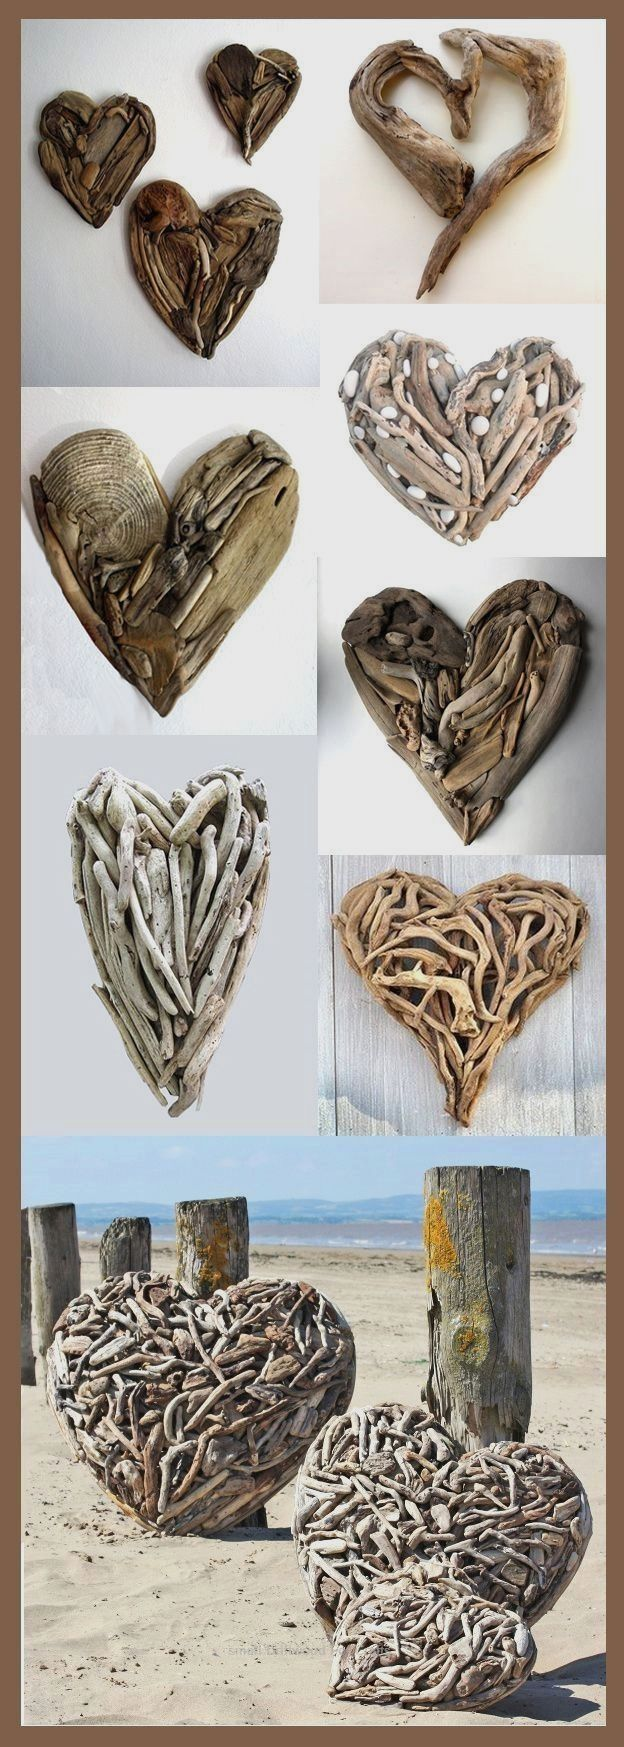 LoveinDIY 250 Natural Driftwood Pieces Branch Slices for DIY Arts Crafts Sculpture Coastal Wall Art 1298  an accumulation of driftwood hearts found on Pinterest